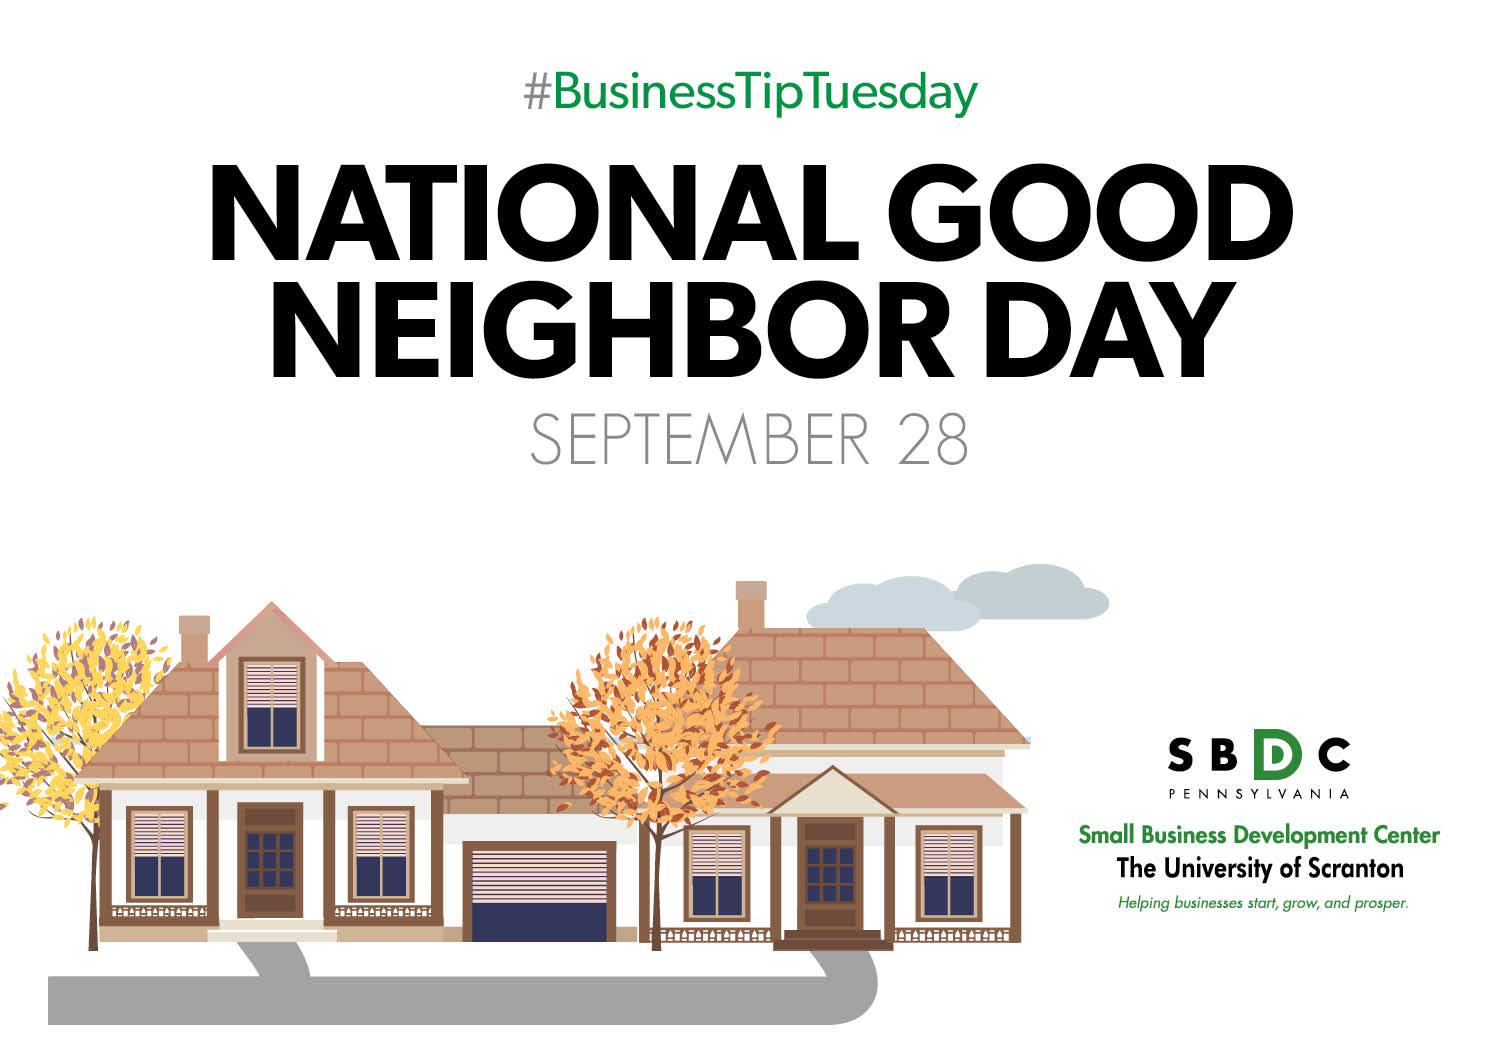 #BusinessTipTuesday – National Good Neighbor Day